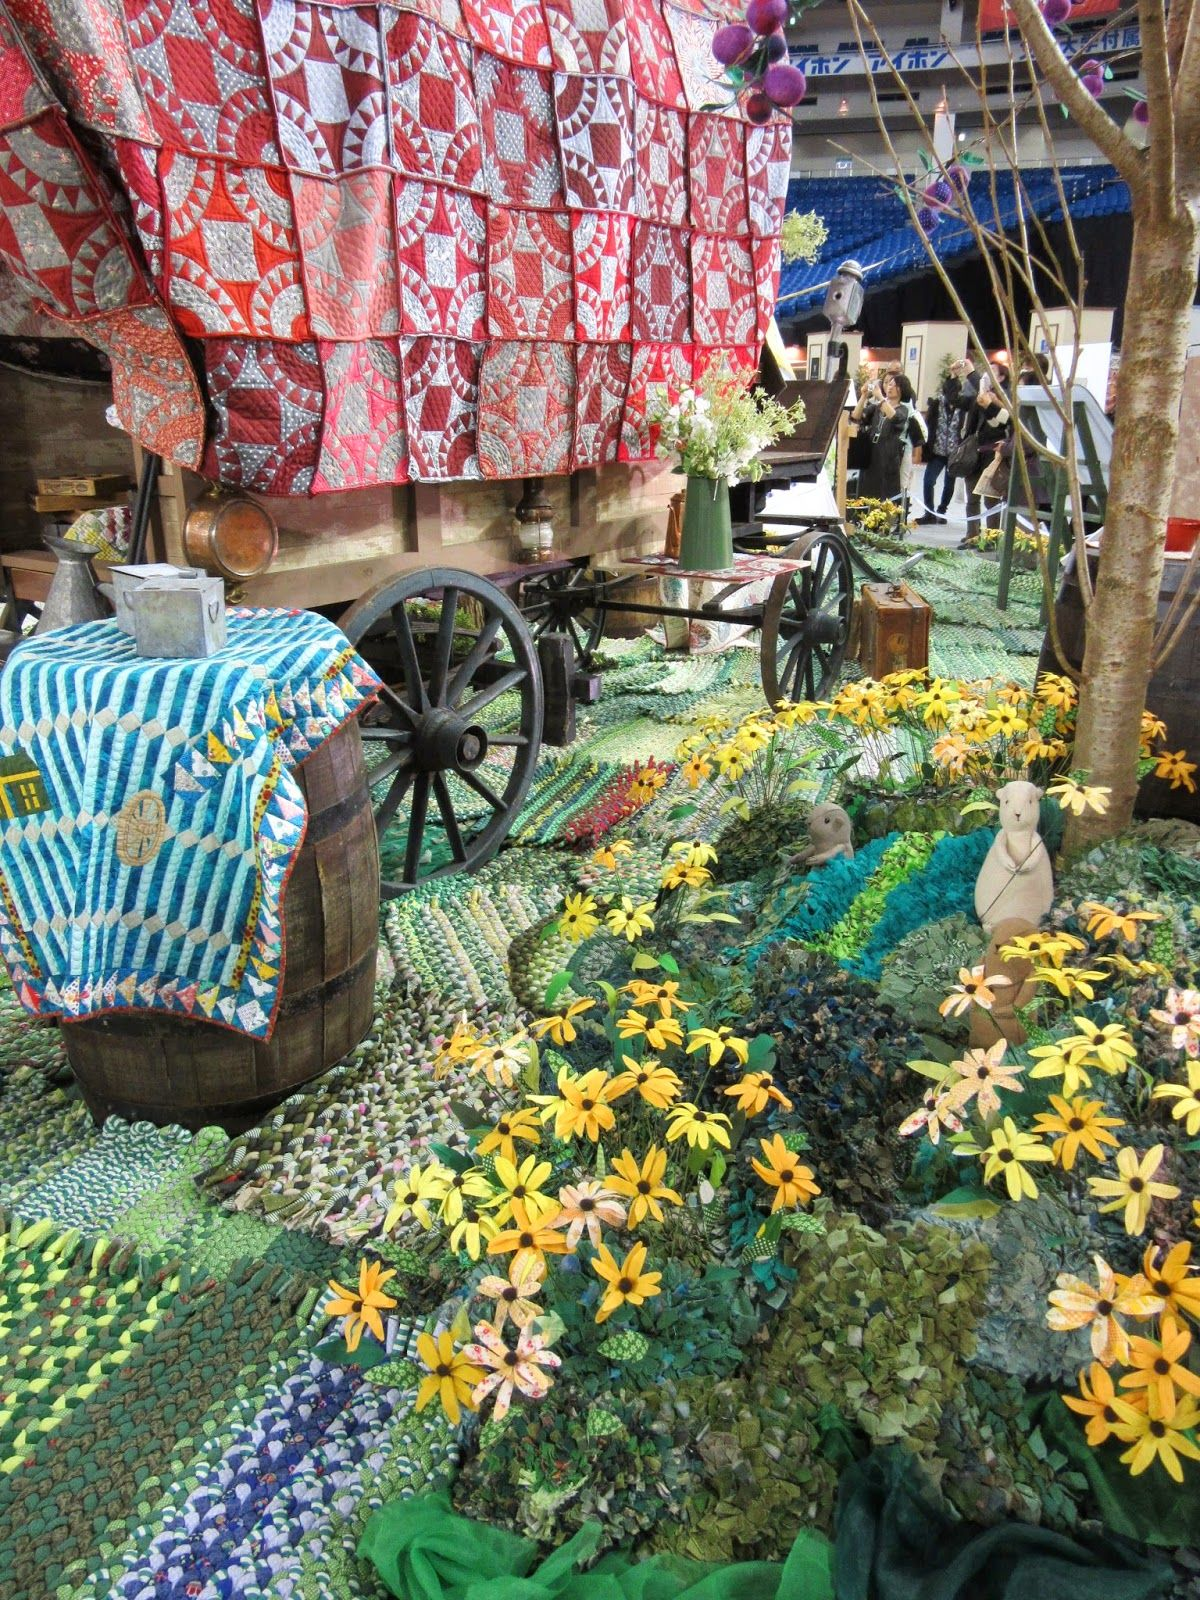 note the cute little critters in the garden near the tree trunk Queenie's Needlework: Tokyo International Great Quilt Festival - 5 Building quilt scenes